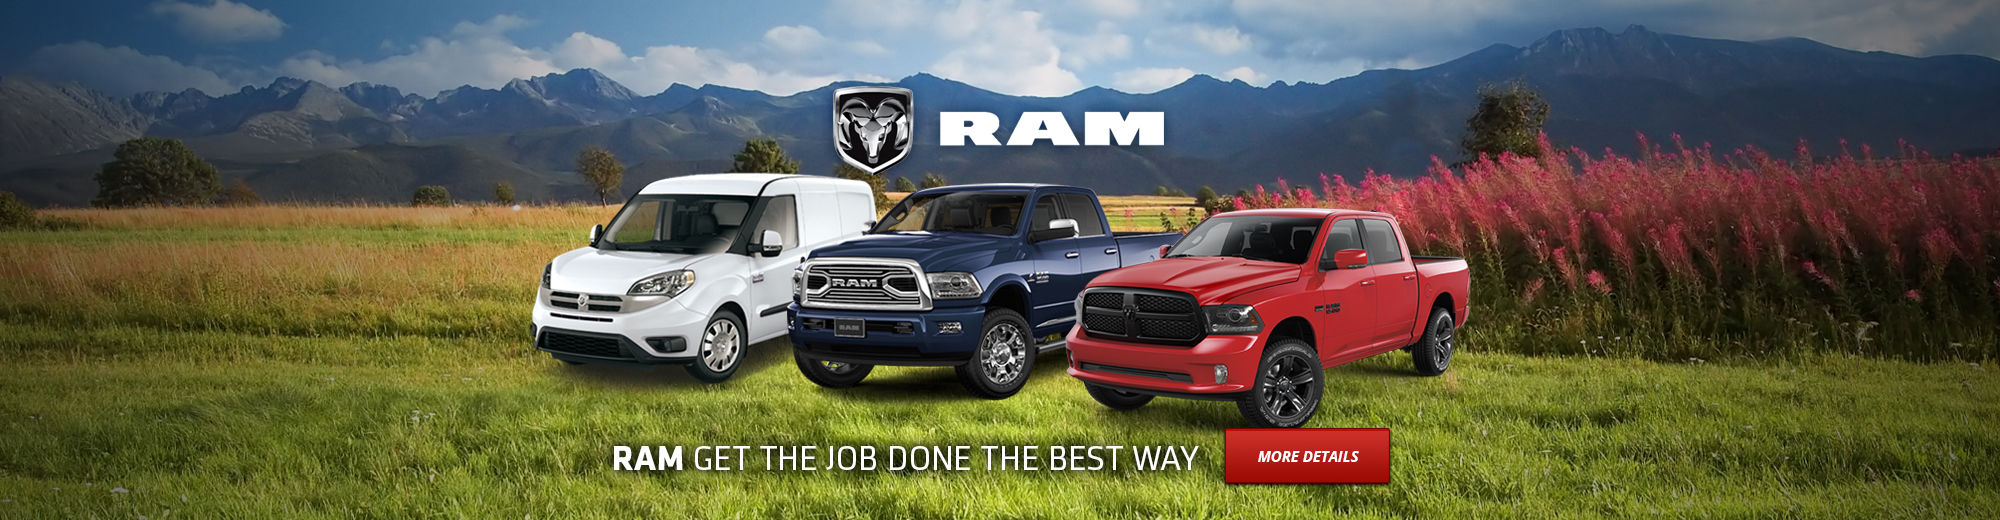 RAM GET THE JOB DONE THE BEST WAY